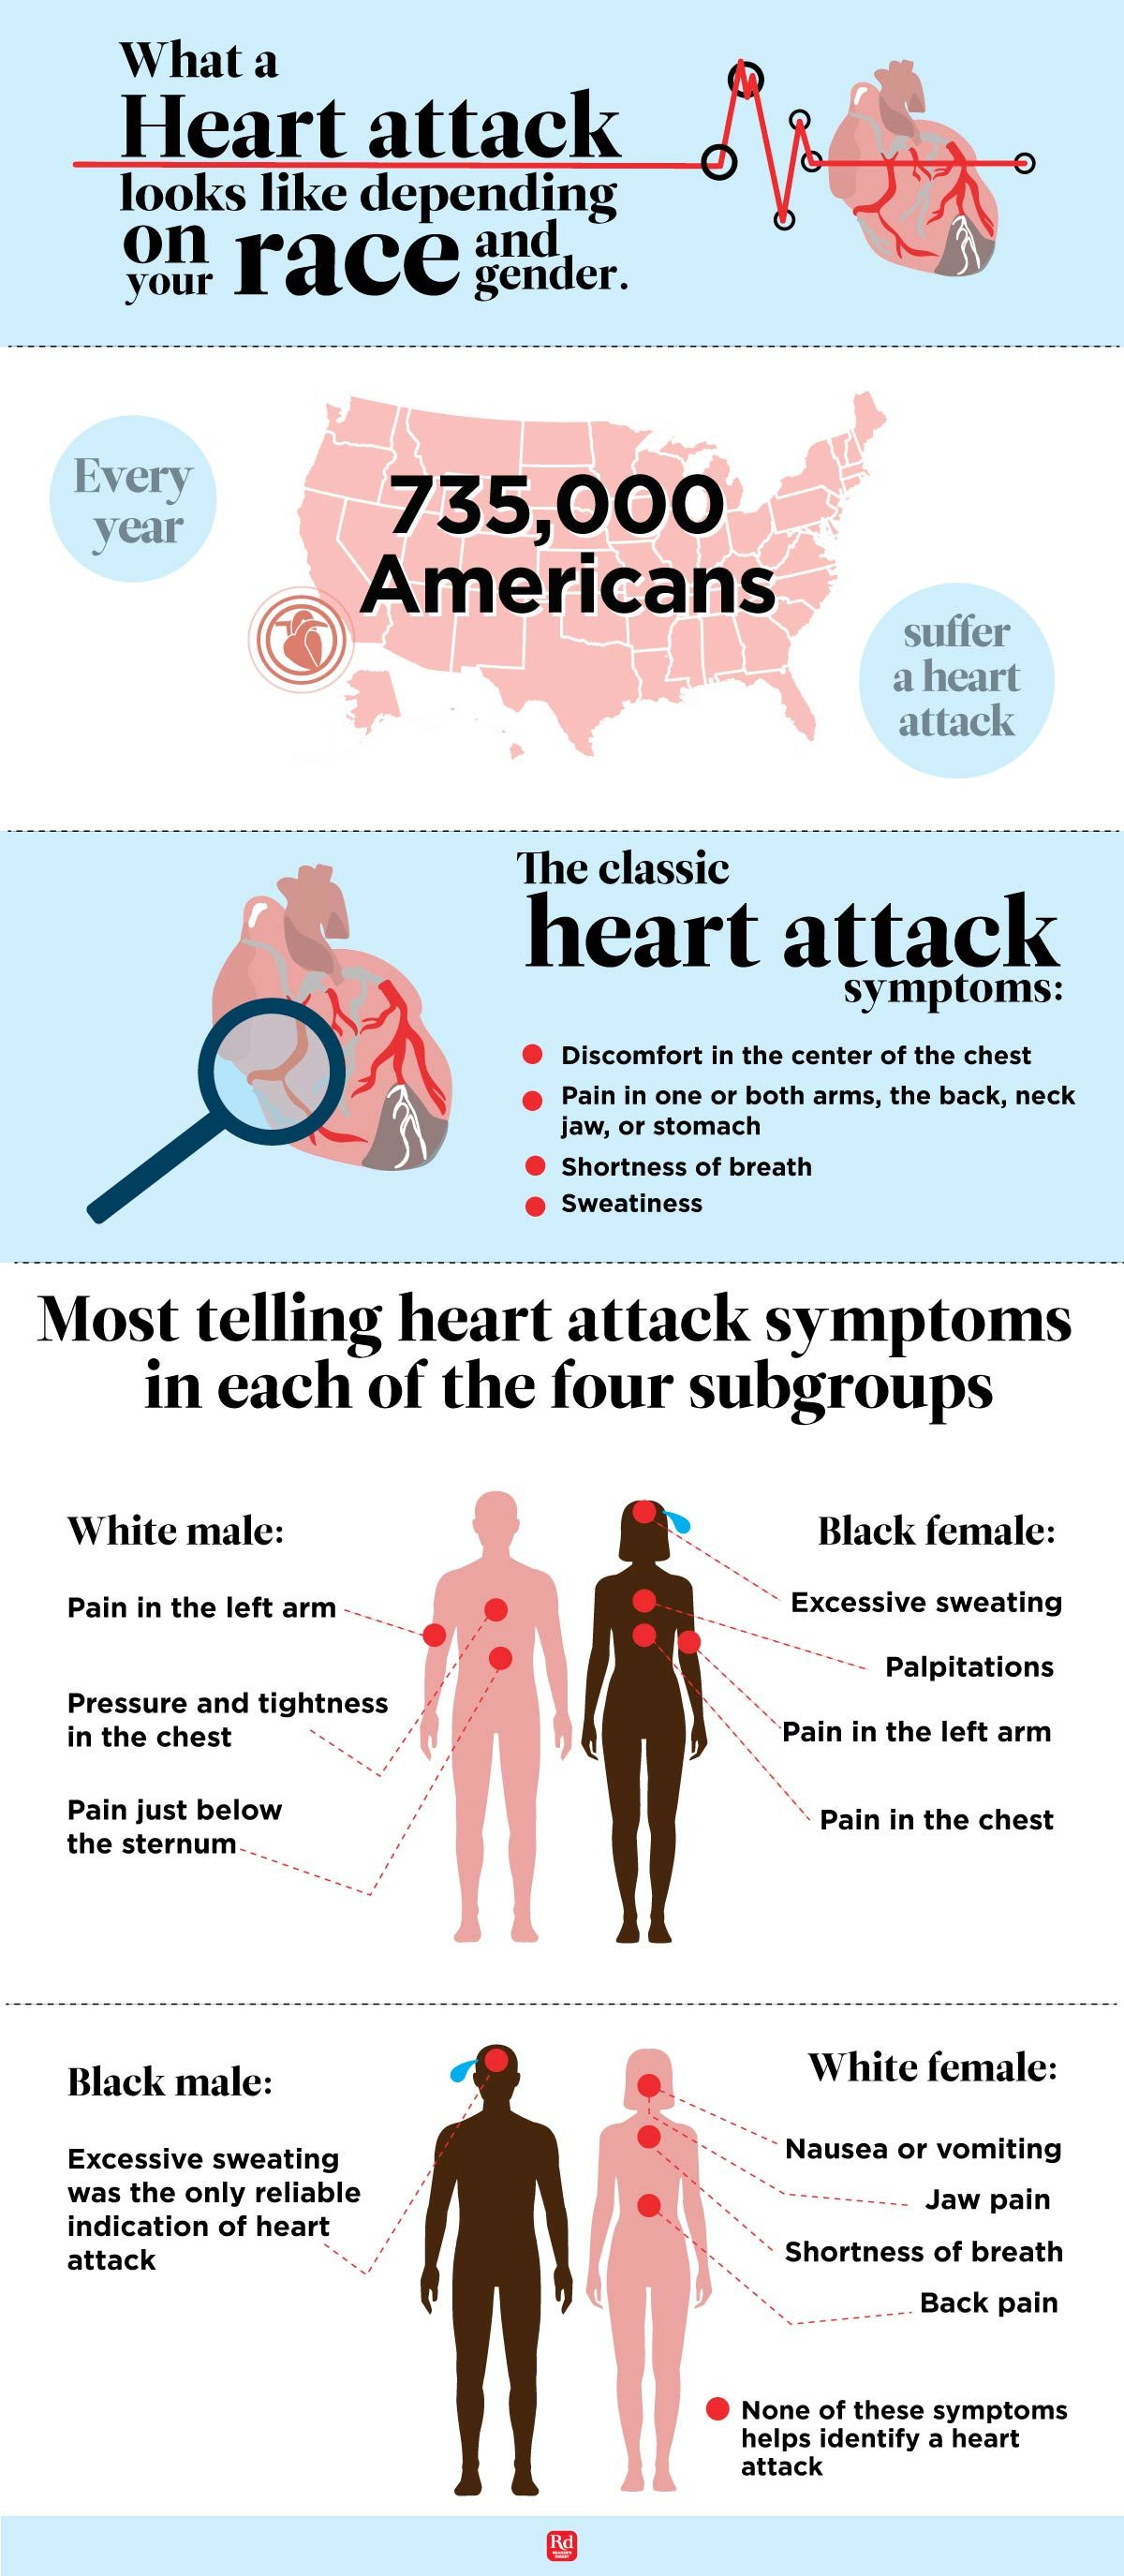 This-Infographic-Shows-What-a-Heart-Attack-Looks-Like-Depending-on-Your-Race-and-Gender